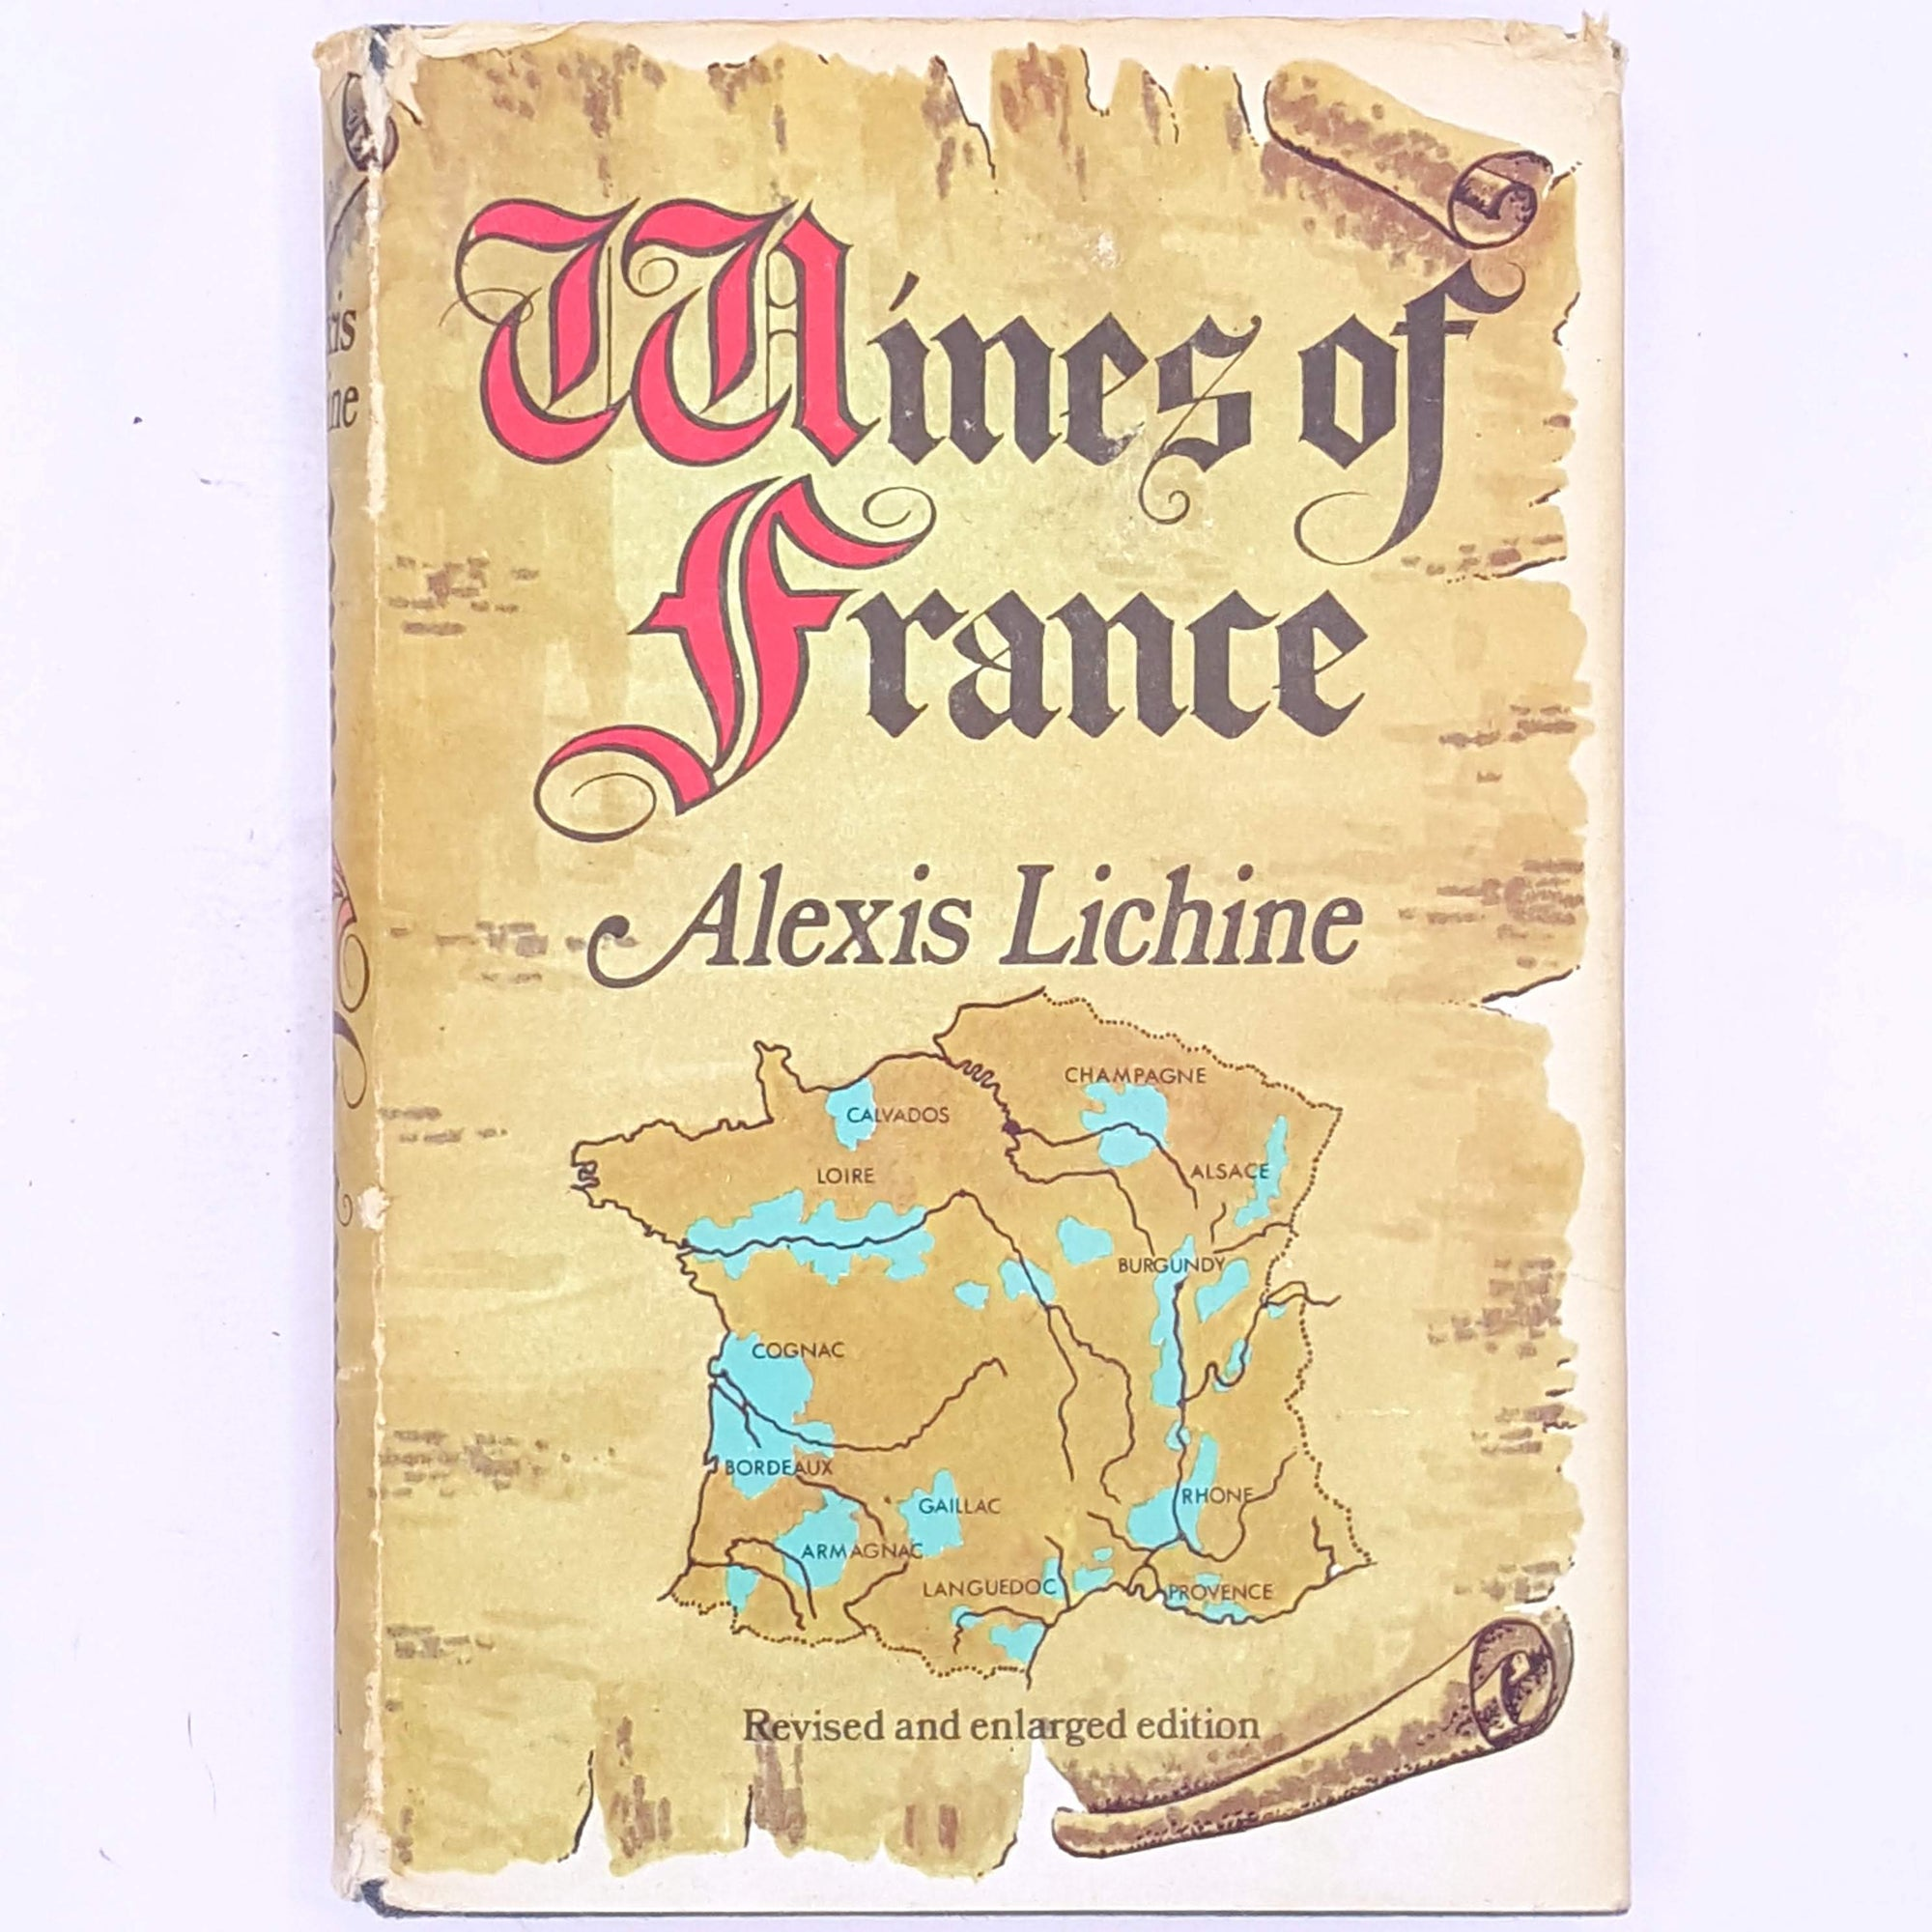 thrift-skills-cookbook-patterned-food-baking- classic-books-recipes-cooking-for-foodies-cookbooks-country-house-library-antique-wine-wines-alcohol-old-wines-of-france-alexis-lichine-decorative-vintage-hobbies-gifts-